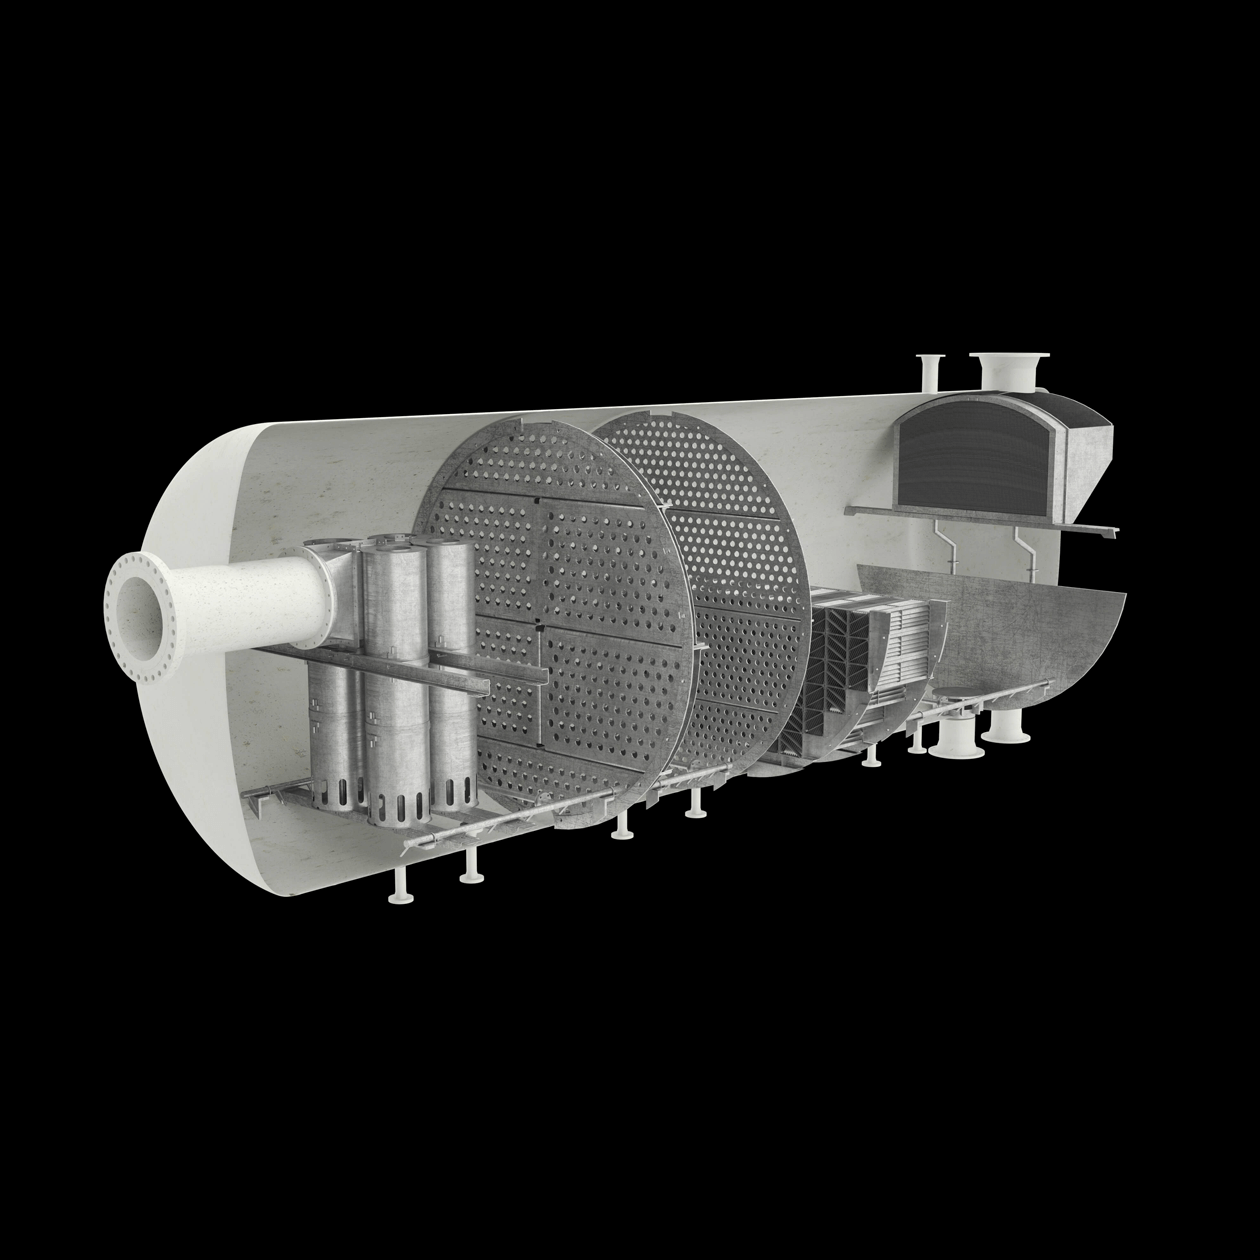 A vessel render sliced in half showing all the separation equipment inside